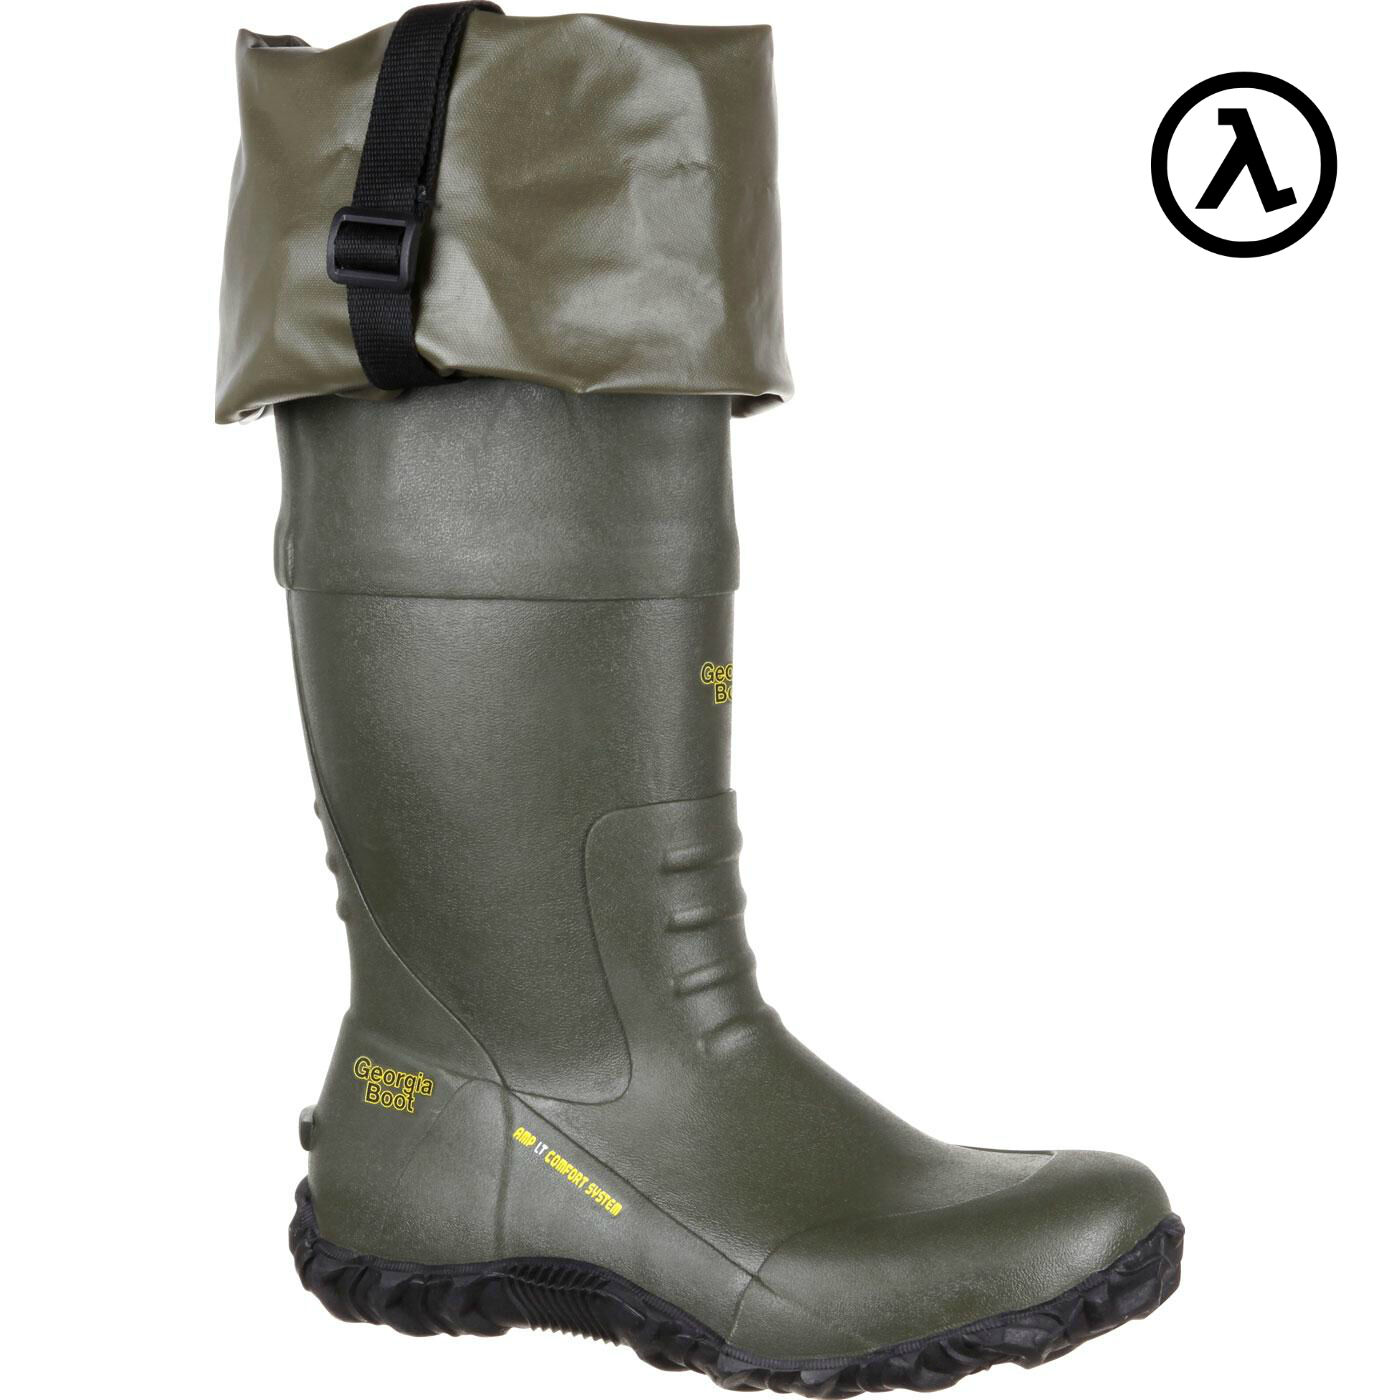 GEORGIA BOOT WATERPROOF HIP WADERS GB00180 - ALL SIZES - NEW